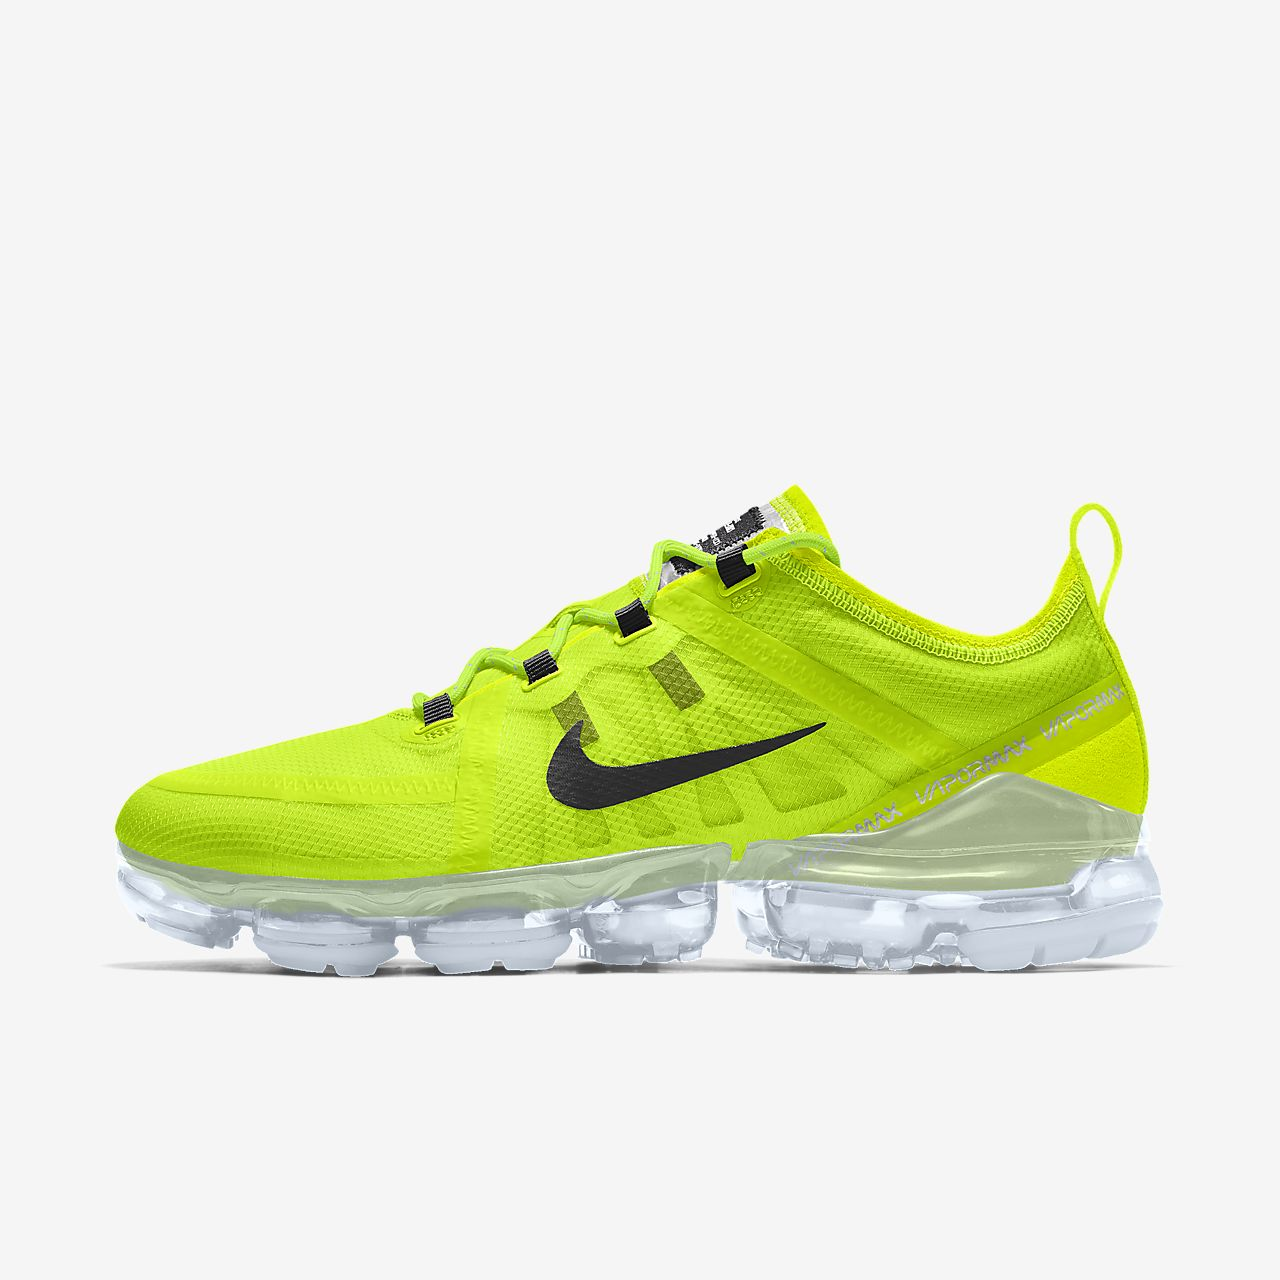 Nike Air Vapor Max Flyknit 3.0 Red Shoes